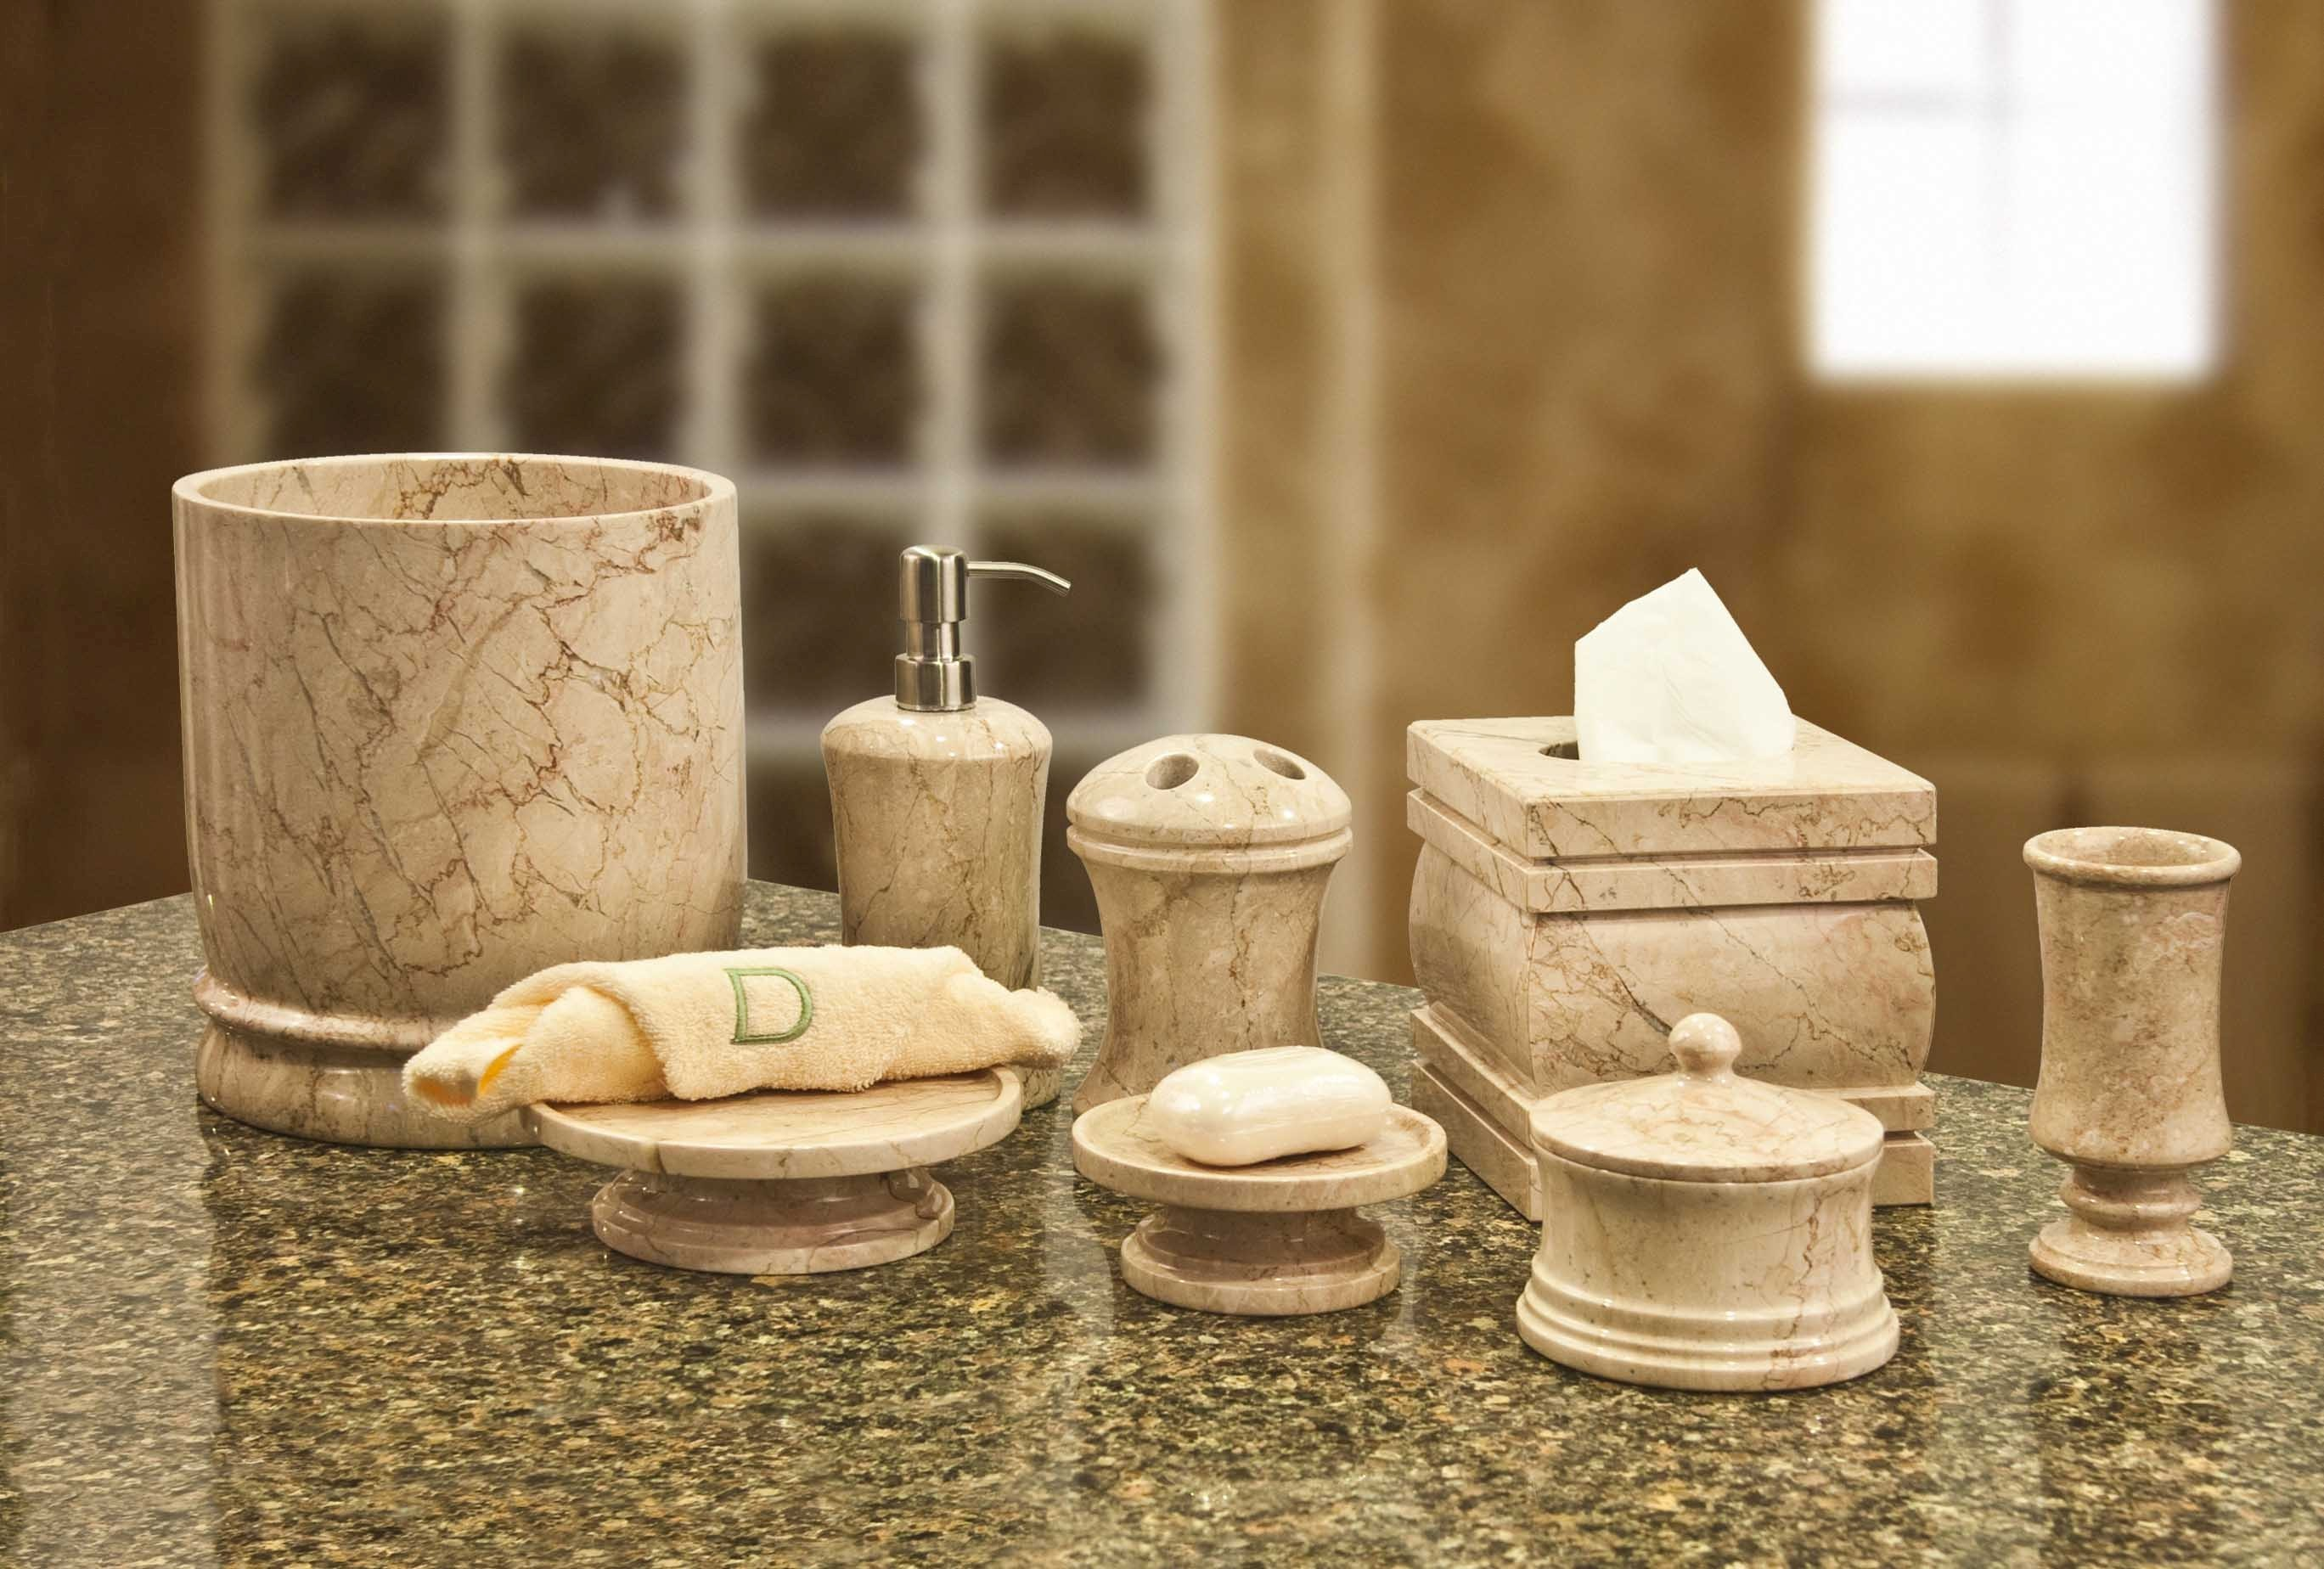 Bathroom Decor Sets Awesome Bathroom Decor Sets Finest Bathroom Accessories Sets Wallpaper